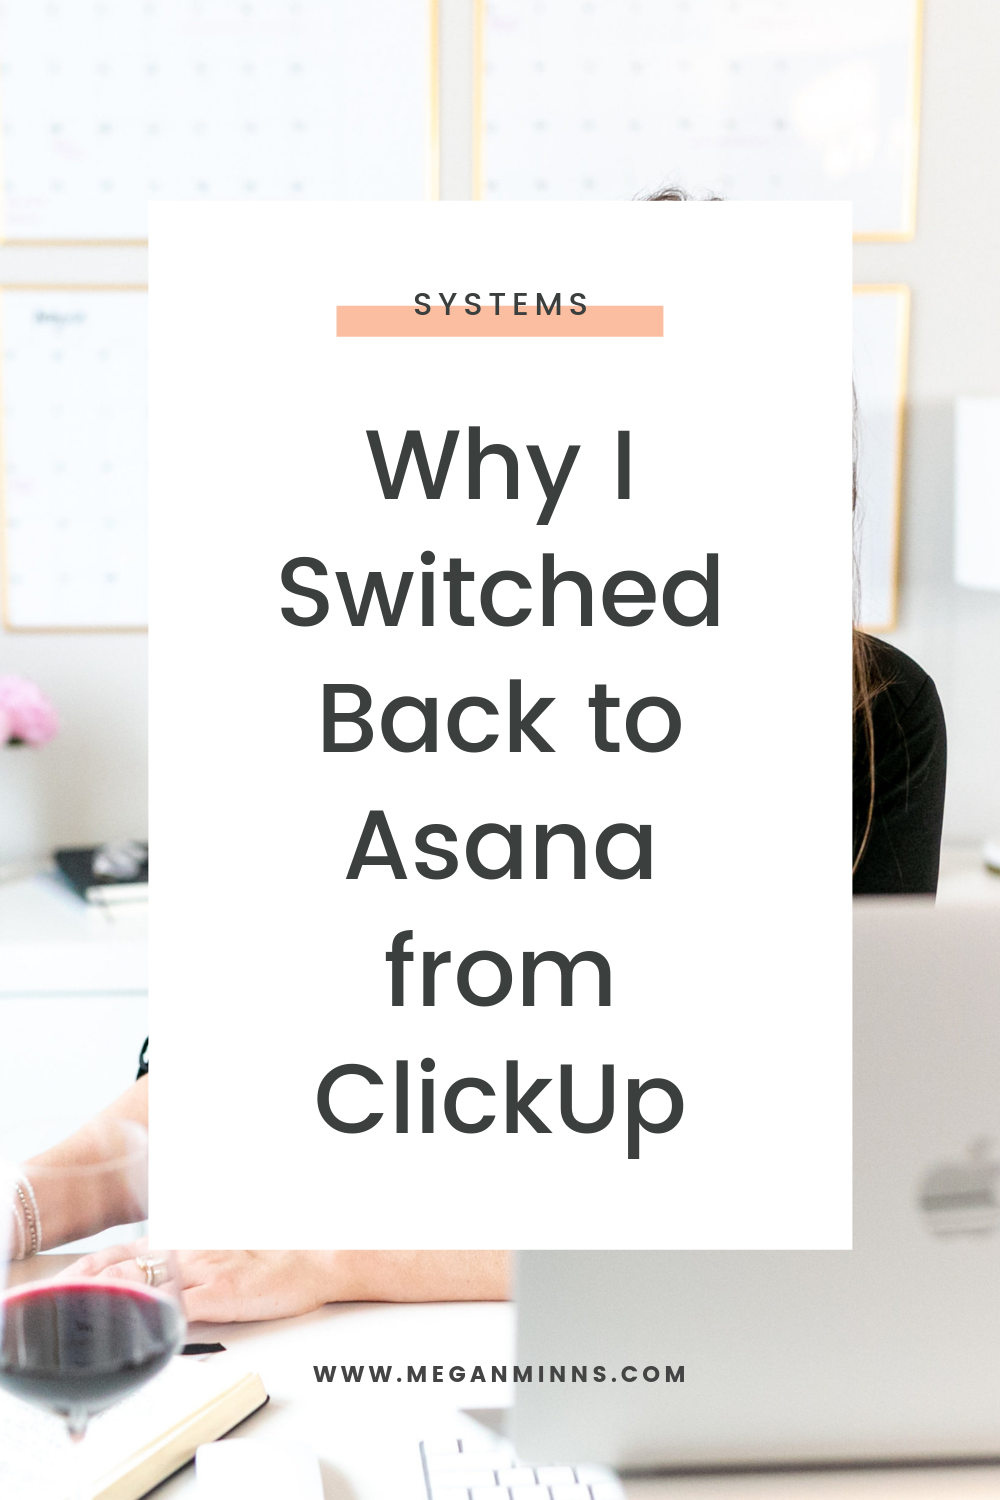 In this episode I share some of the pros and cons of Asana and Clickup, and why I ultimately chose to go back to using Asana for my business.   If you're a systems nerd like me, or you're researching which project management system you want to start using, this is for you!   There is no one size fits all platform, but listen in for the key features I love about Asana.  READ THE FULL BLOG POST ➡️ https://meganminns.com/blog/asana-from-clickup